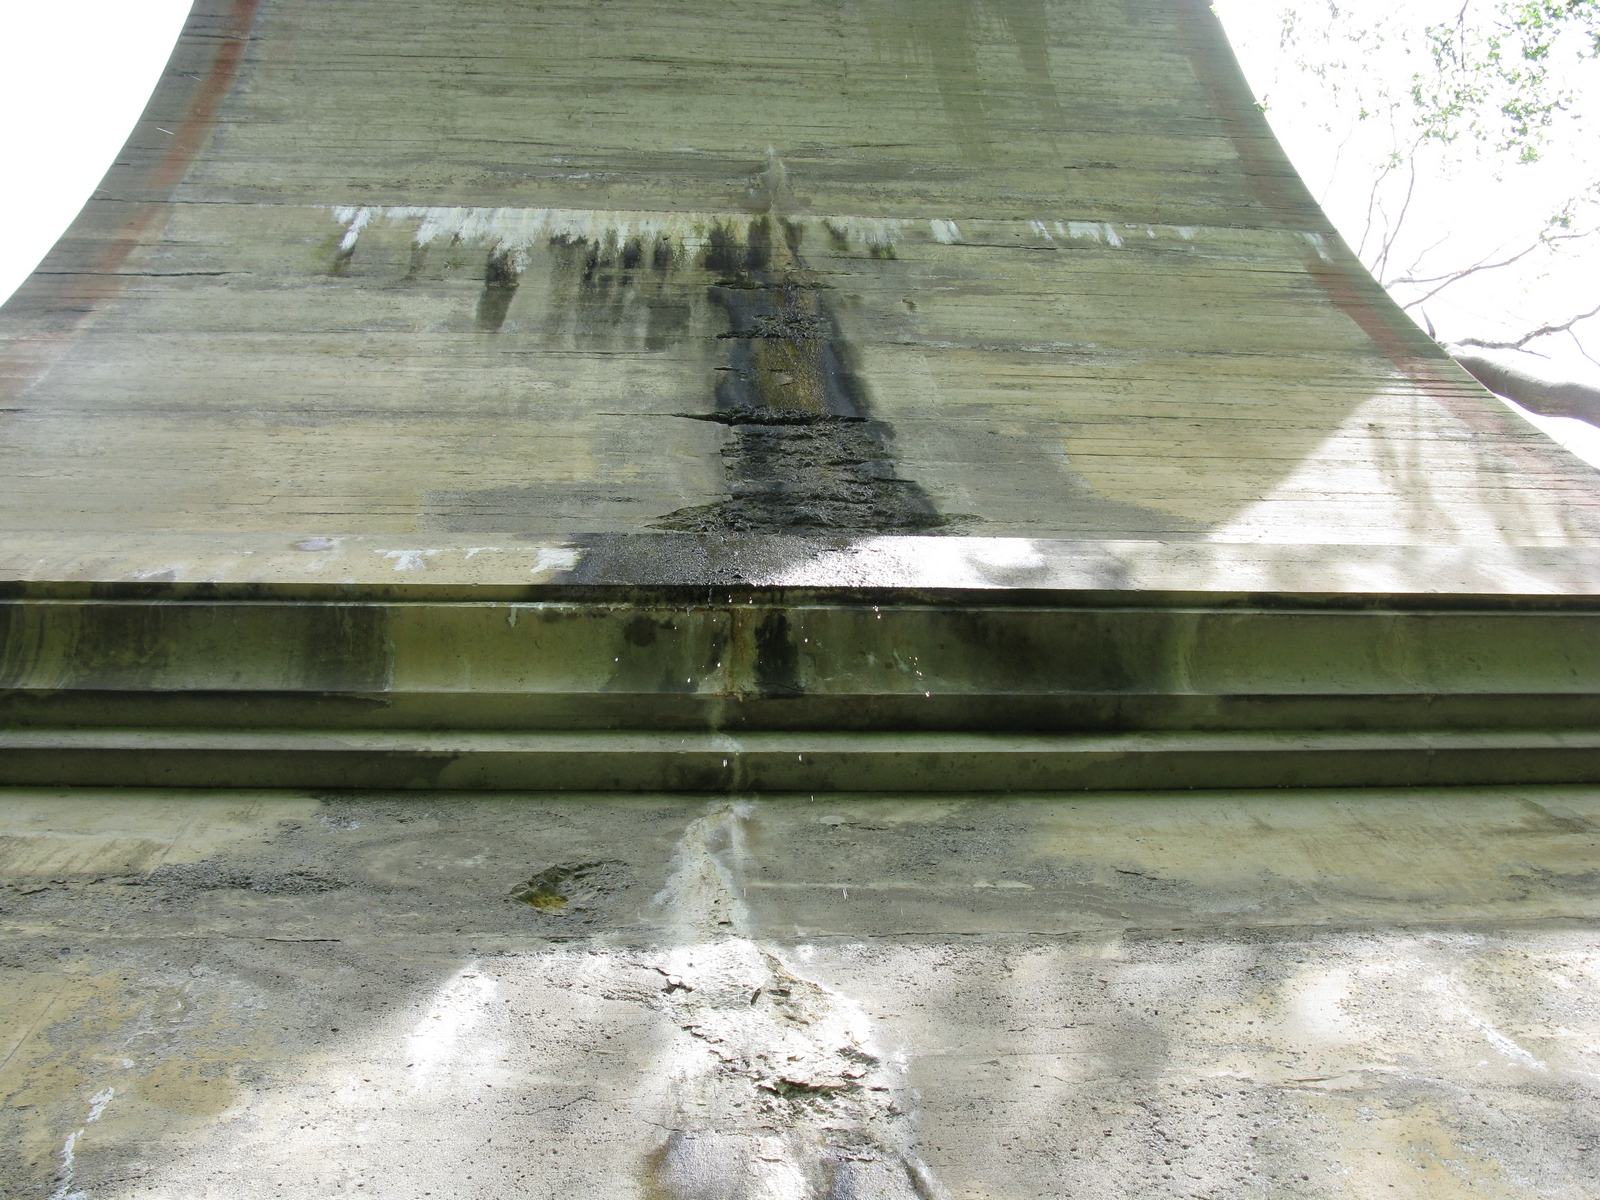 Water damage on the Viaduct